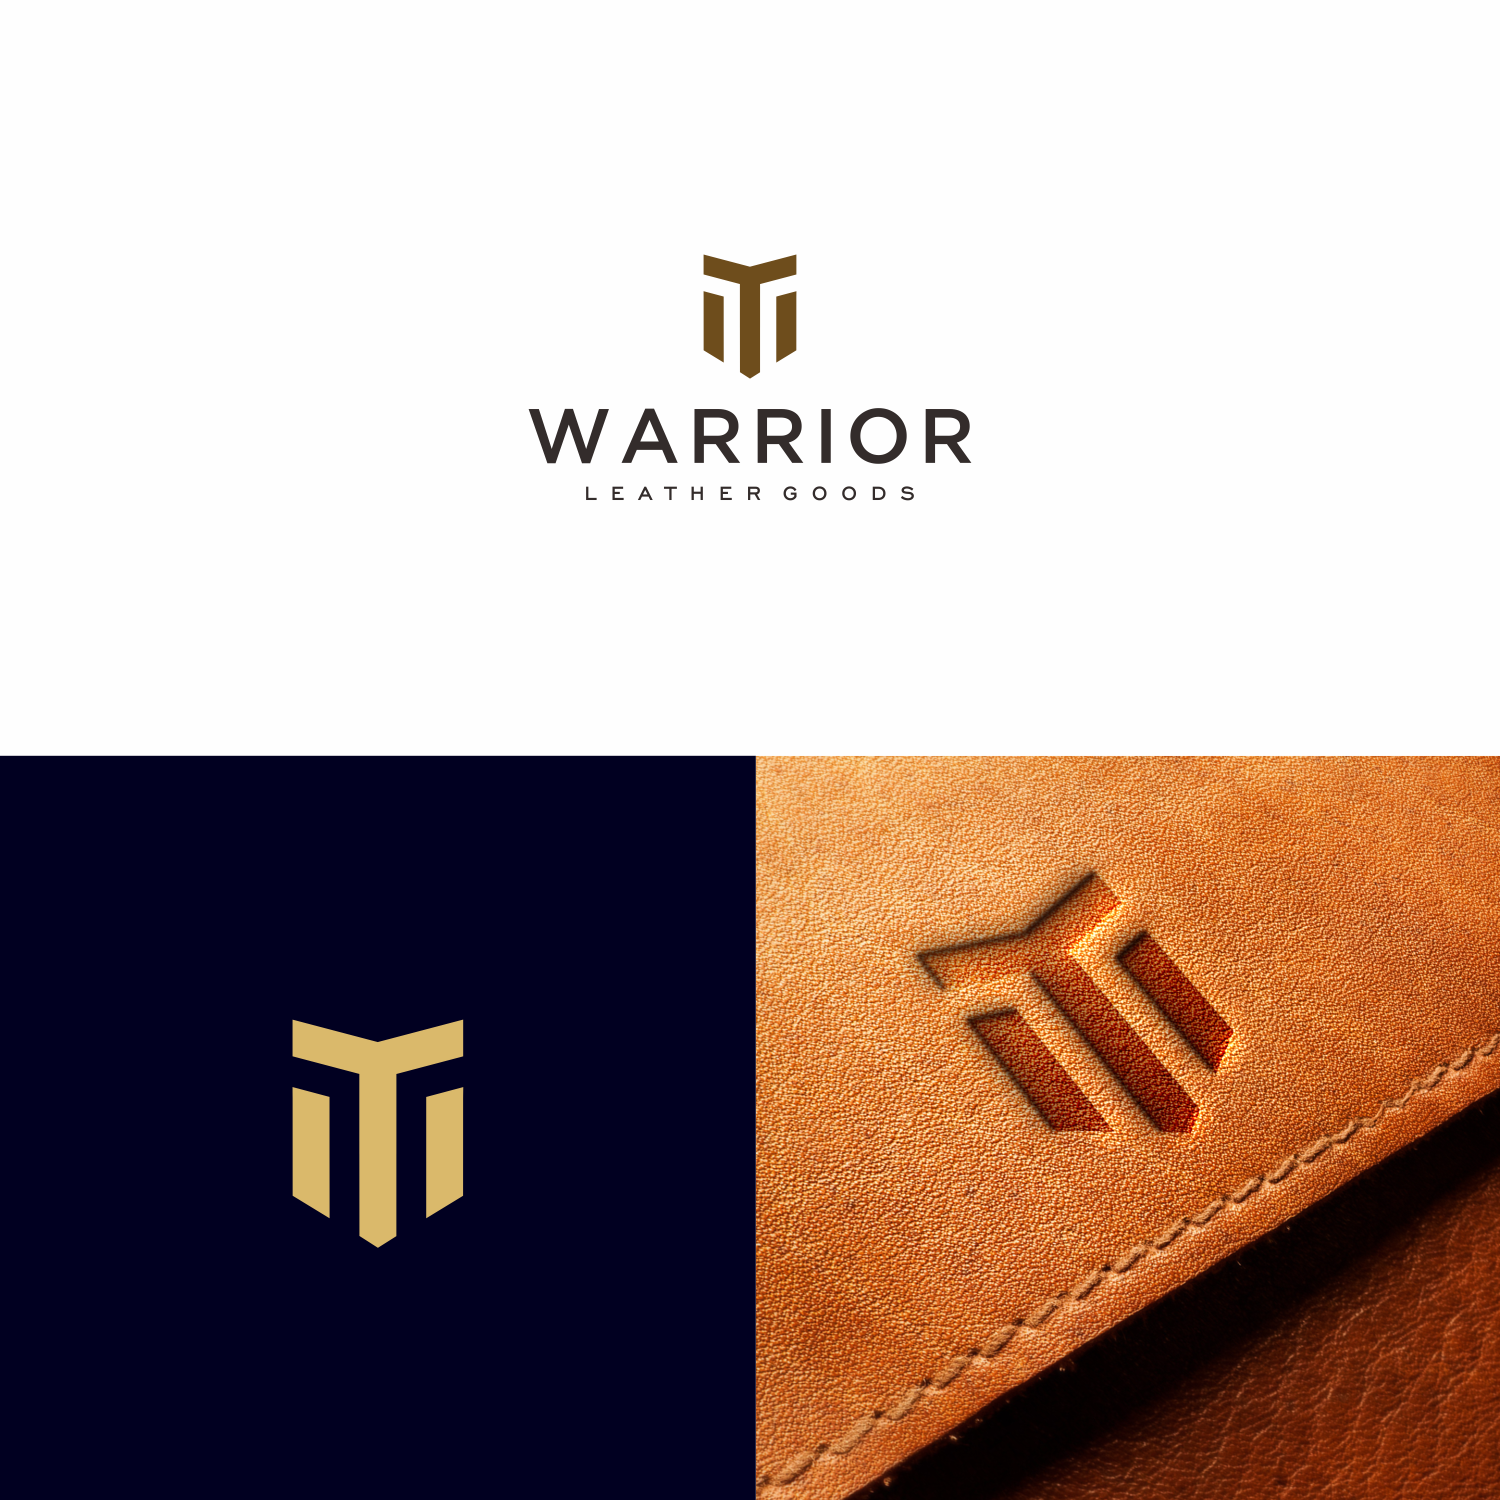 bold playful logo design for warrior leather goods by nerodesign design 17417334 logo design for warrior leather goods